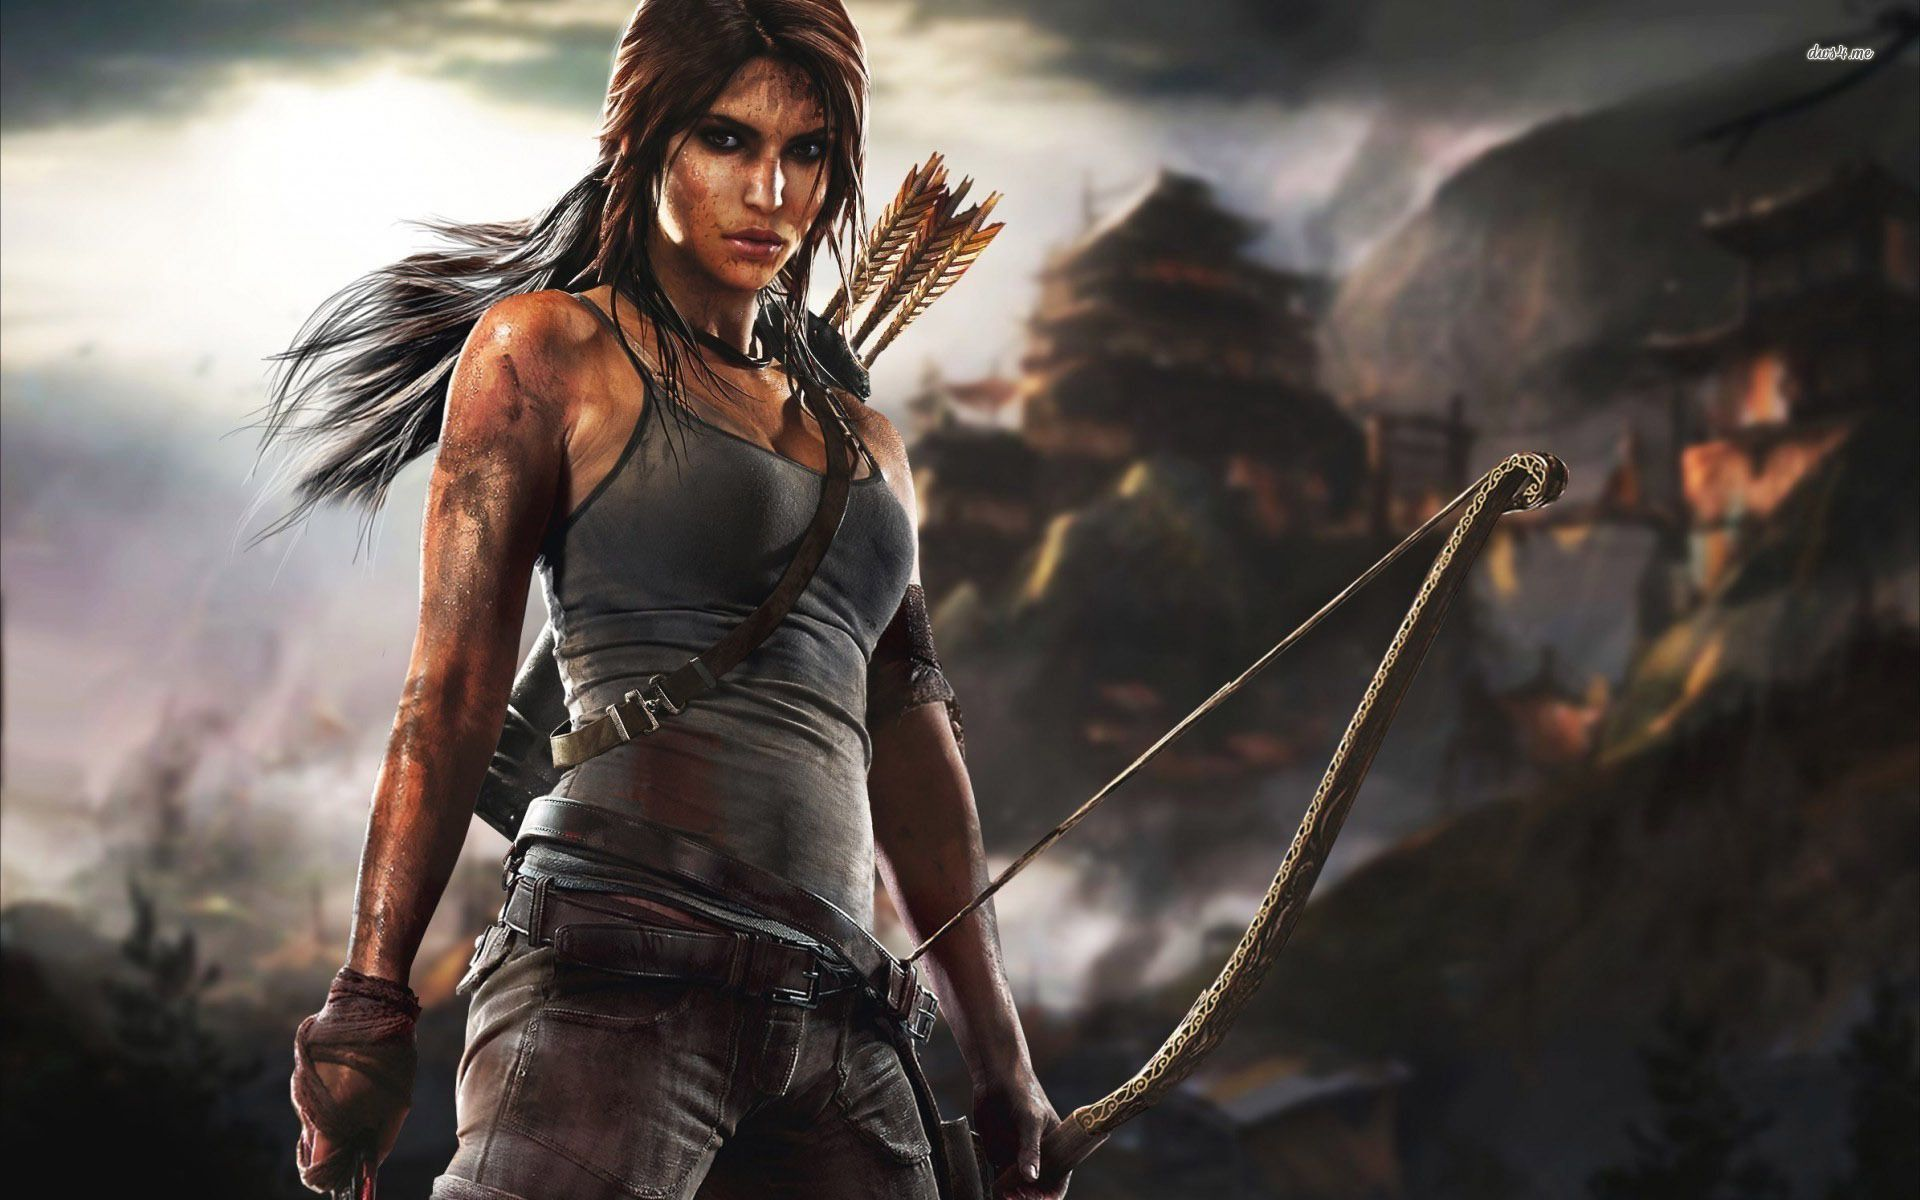 Rise Of The Tomb Raider Hd Wallpapers Backgrounds Lara Croft Gta